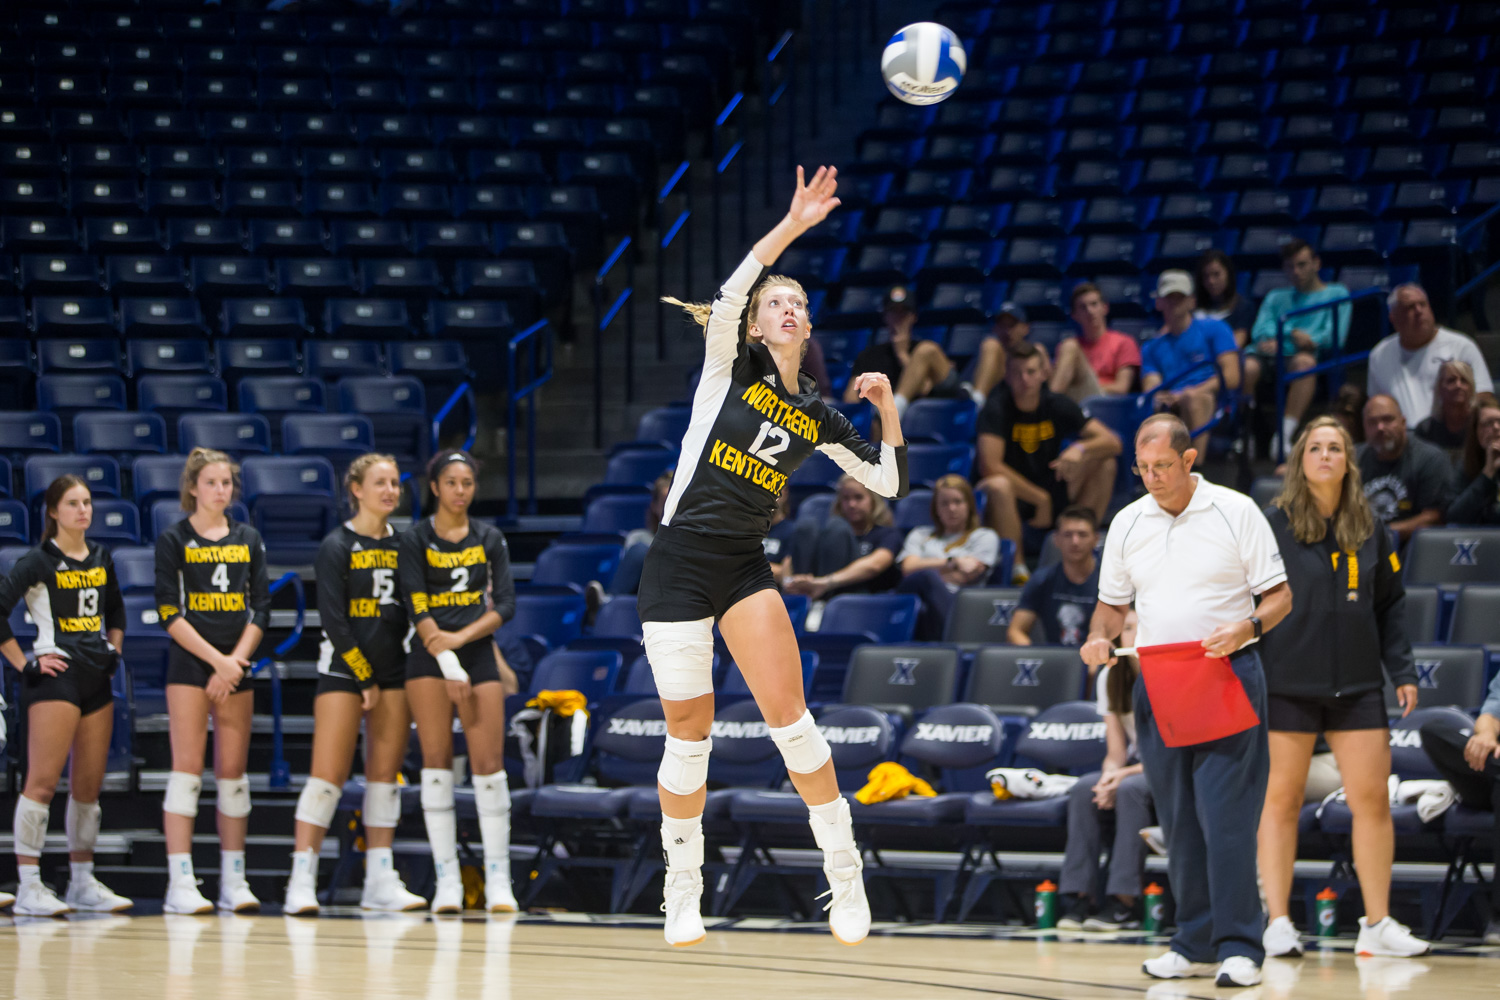 Laura+Crawford+%2812%29+goes+up+for+a+ball+during+the+game+against+Xavier.+The+Norse+defeated+the+Musketeers+and+won+3+of+4+sets.